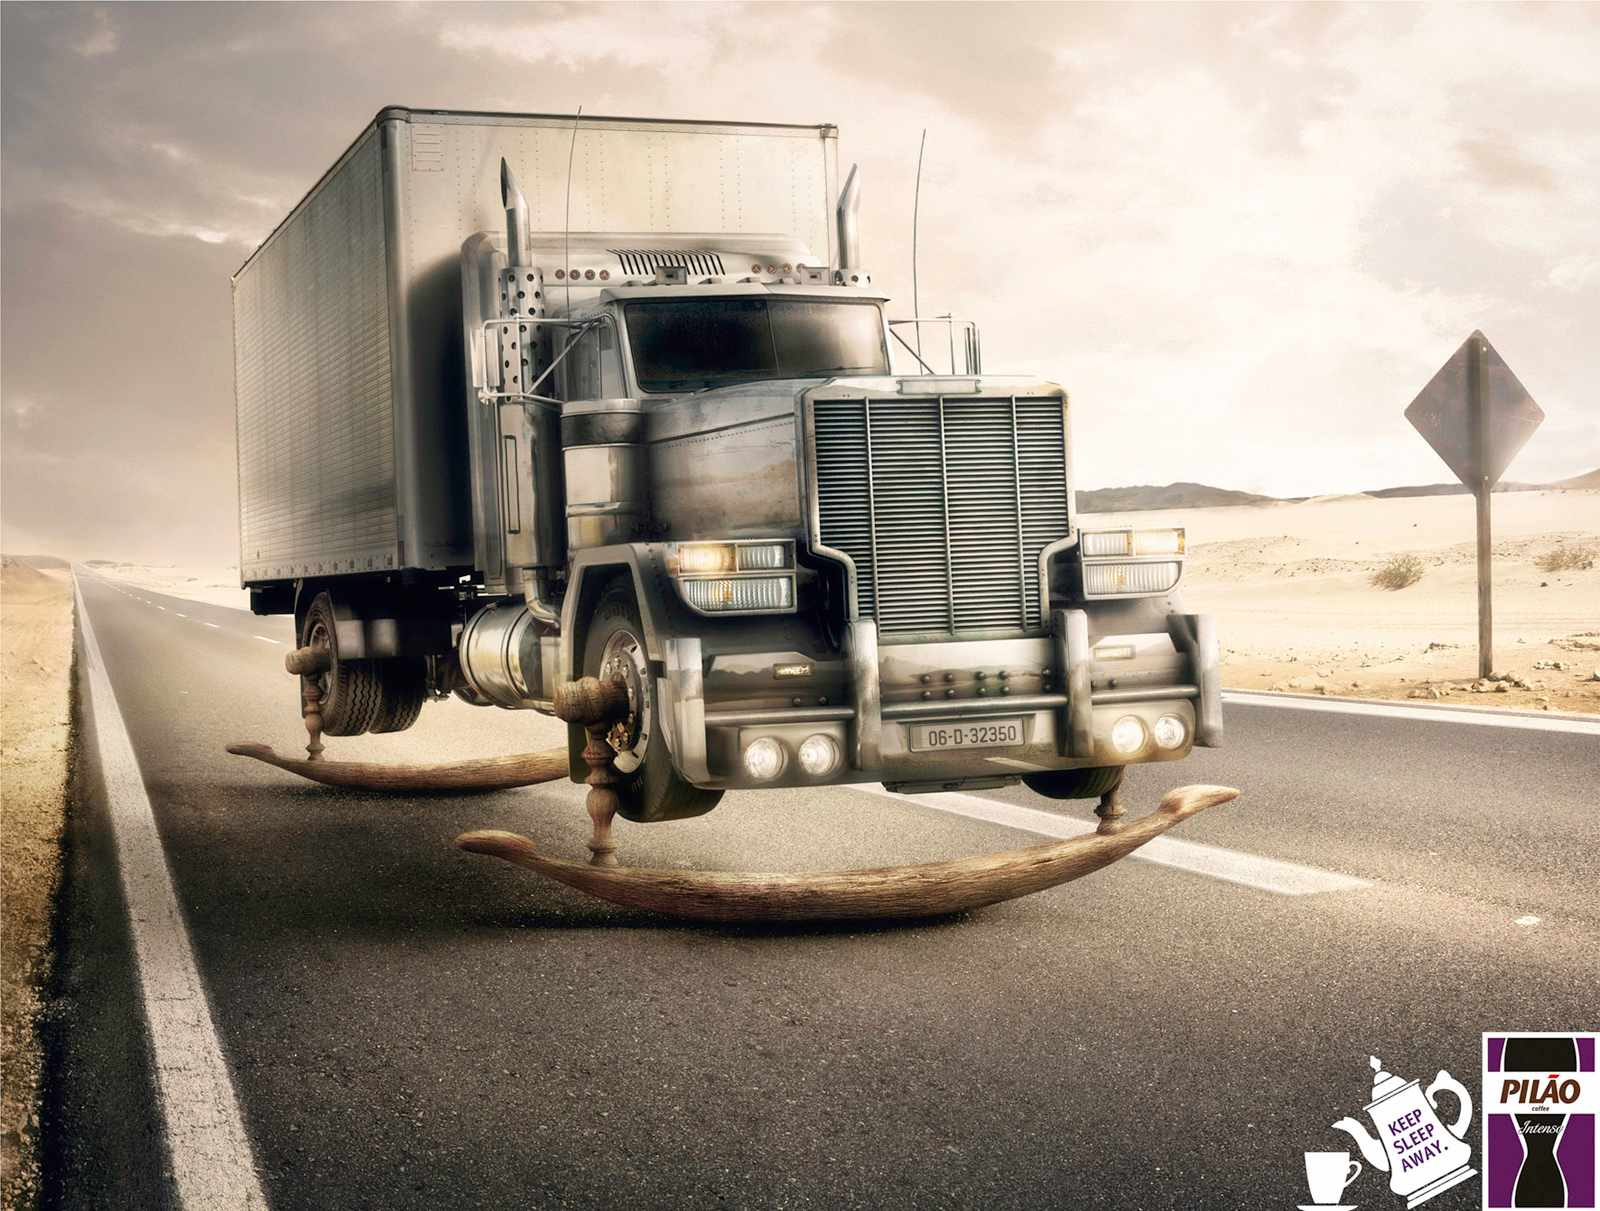 Pilão Intense Coffee: Truck | Ads of the World™